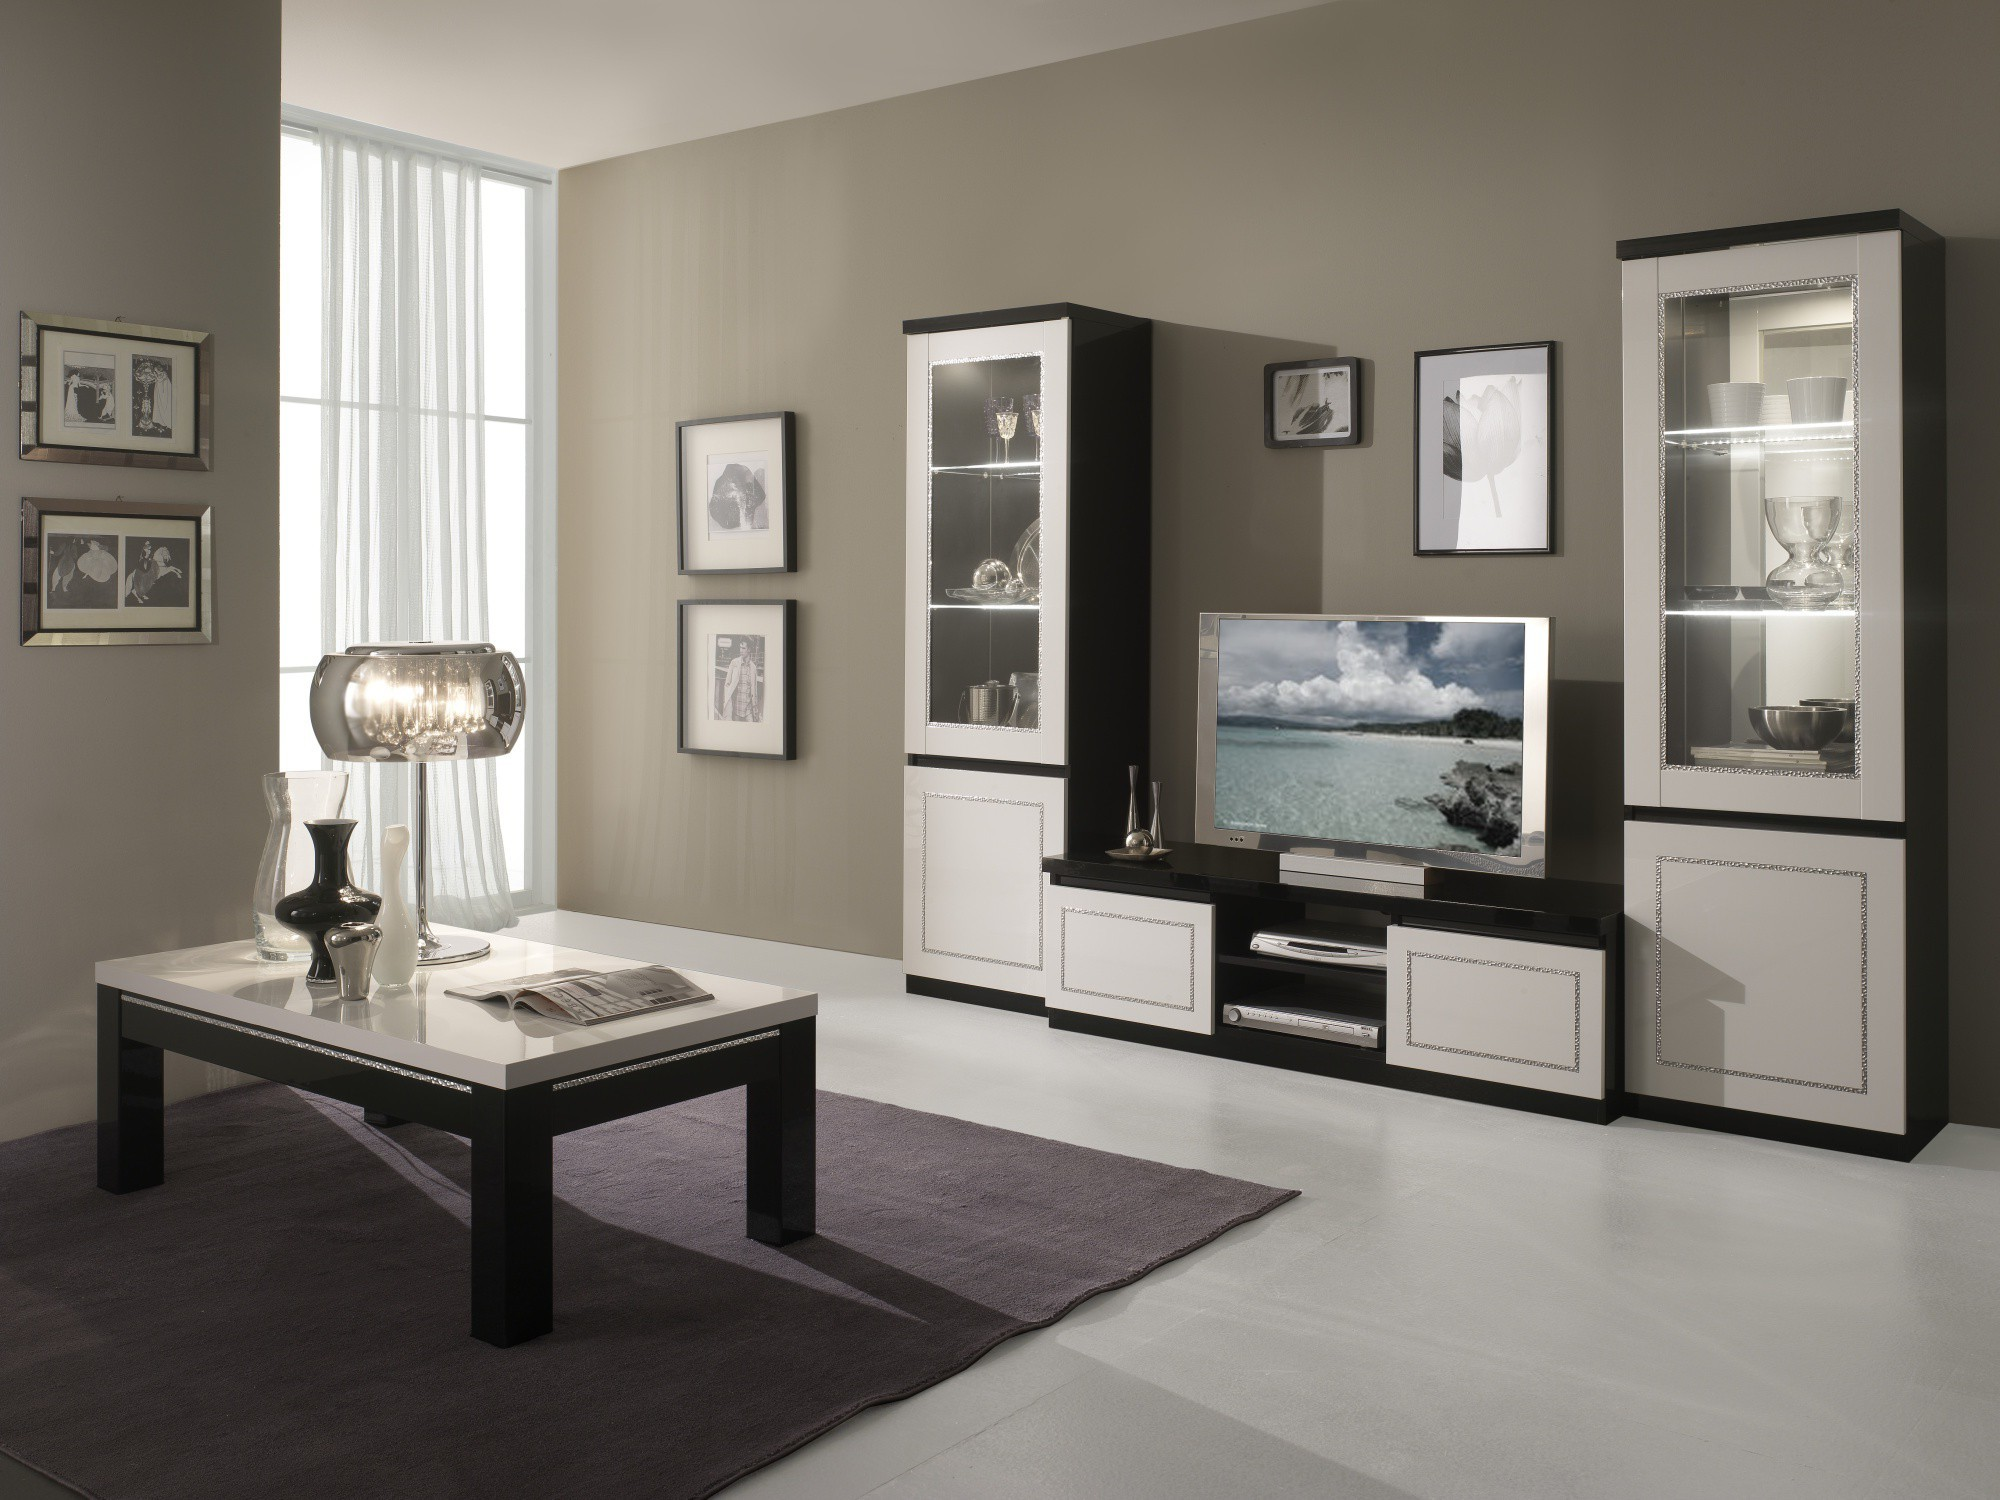 armoire moderne pour salon armoire id es de d coration. Black Bedroom Furniture Sets. Home Design Ideas